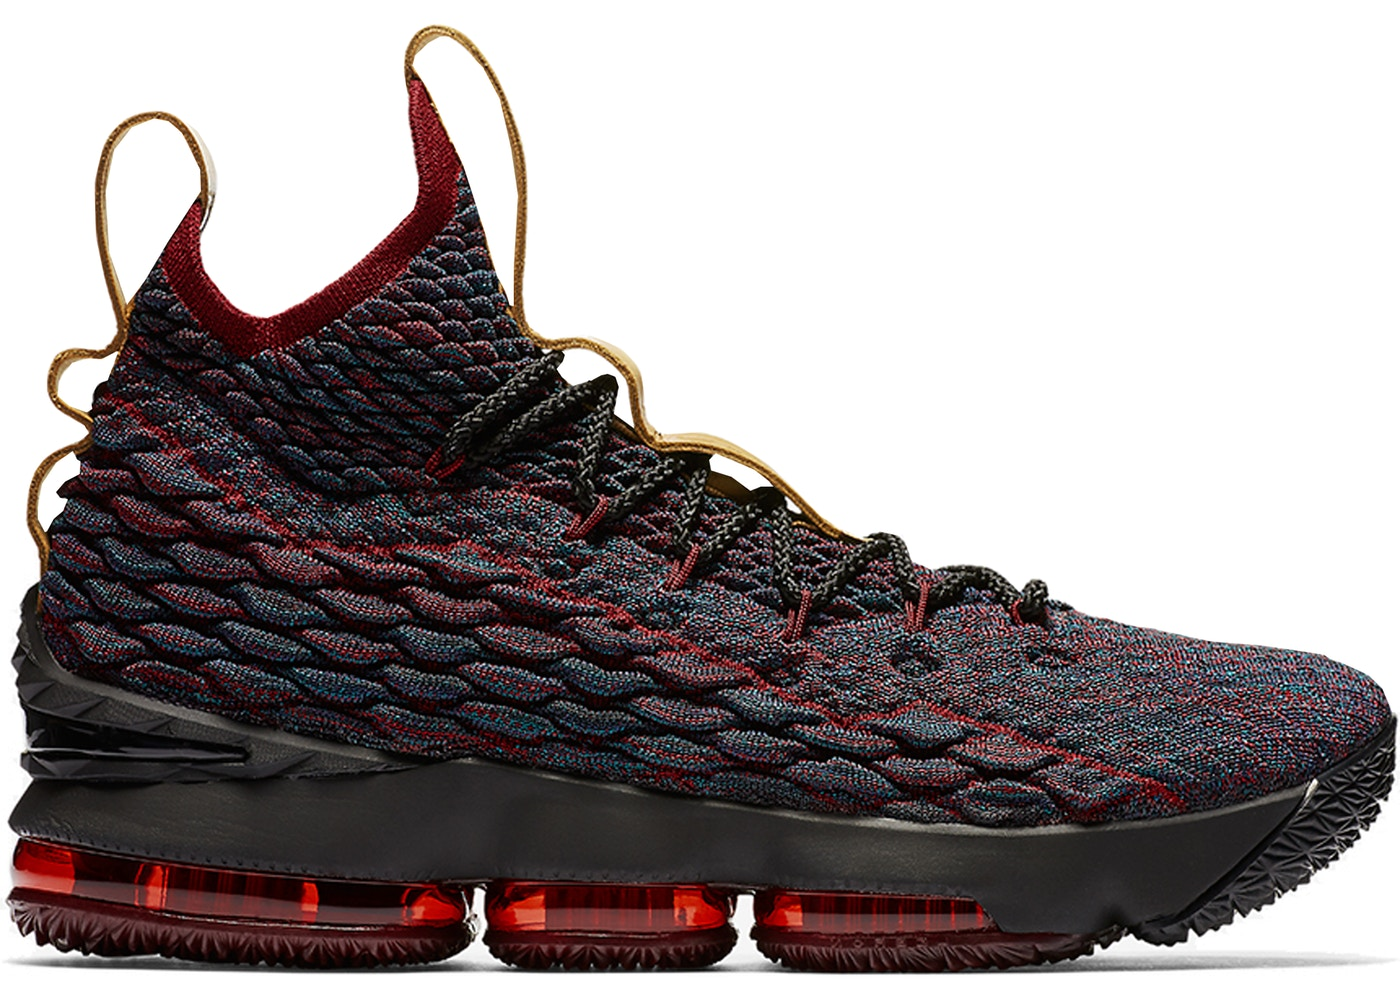 ナイキ NIKE レブロン スニーカー 【 LEBRON 15 NEW HEIGHTS DARK ATOMIC TEAL ALE BROWNTEAM RED 】 メンズ